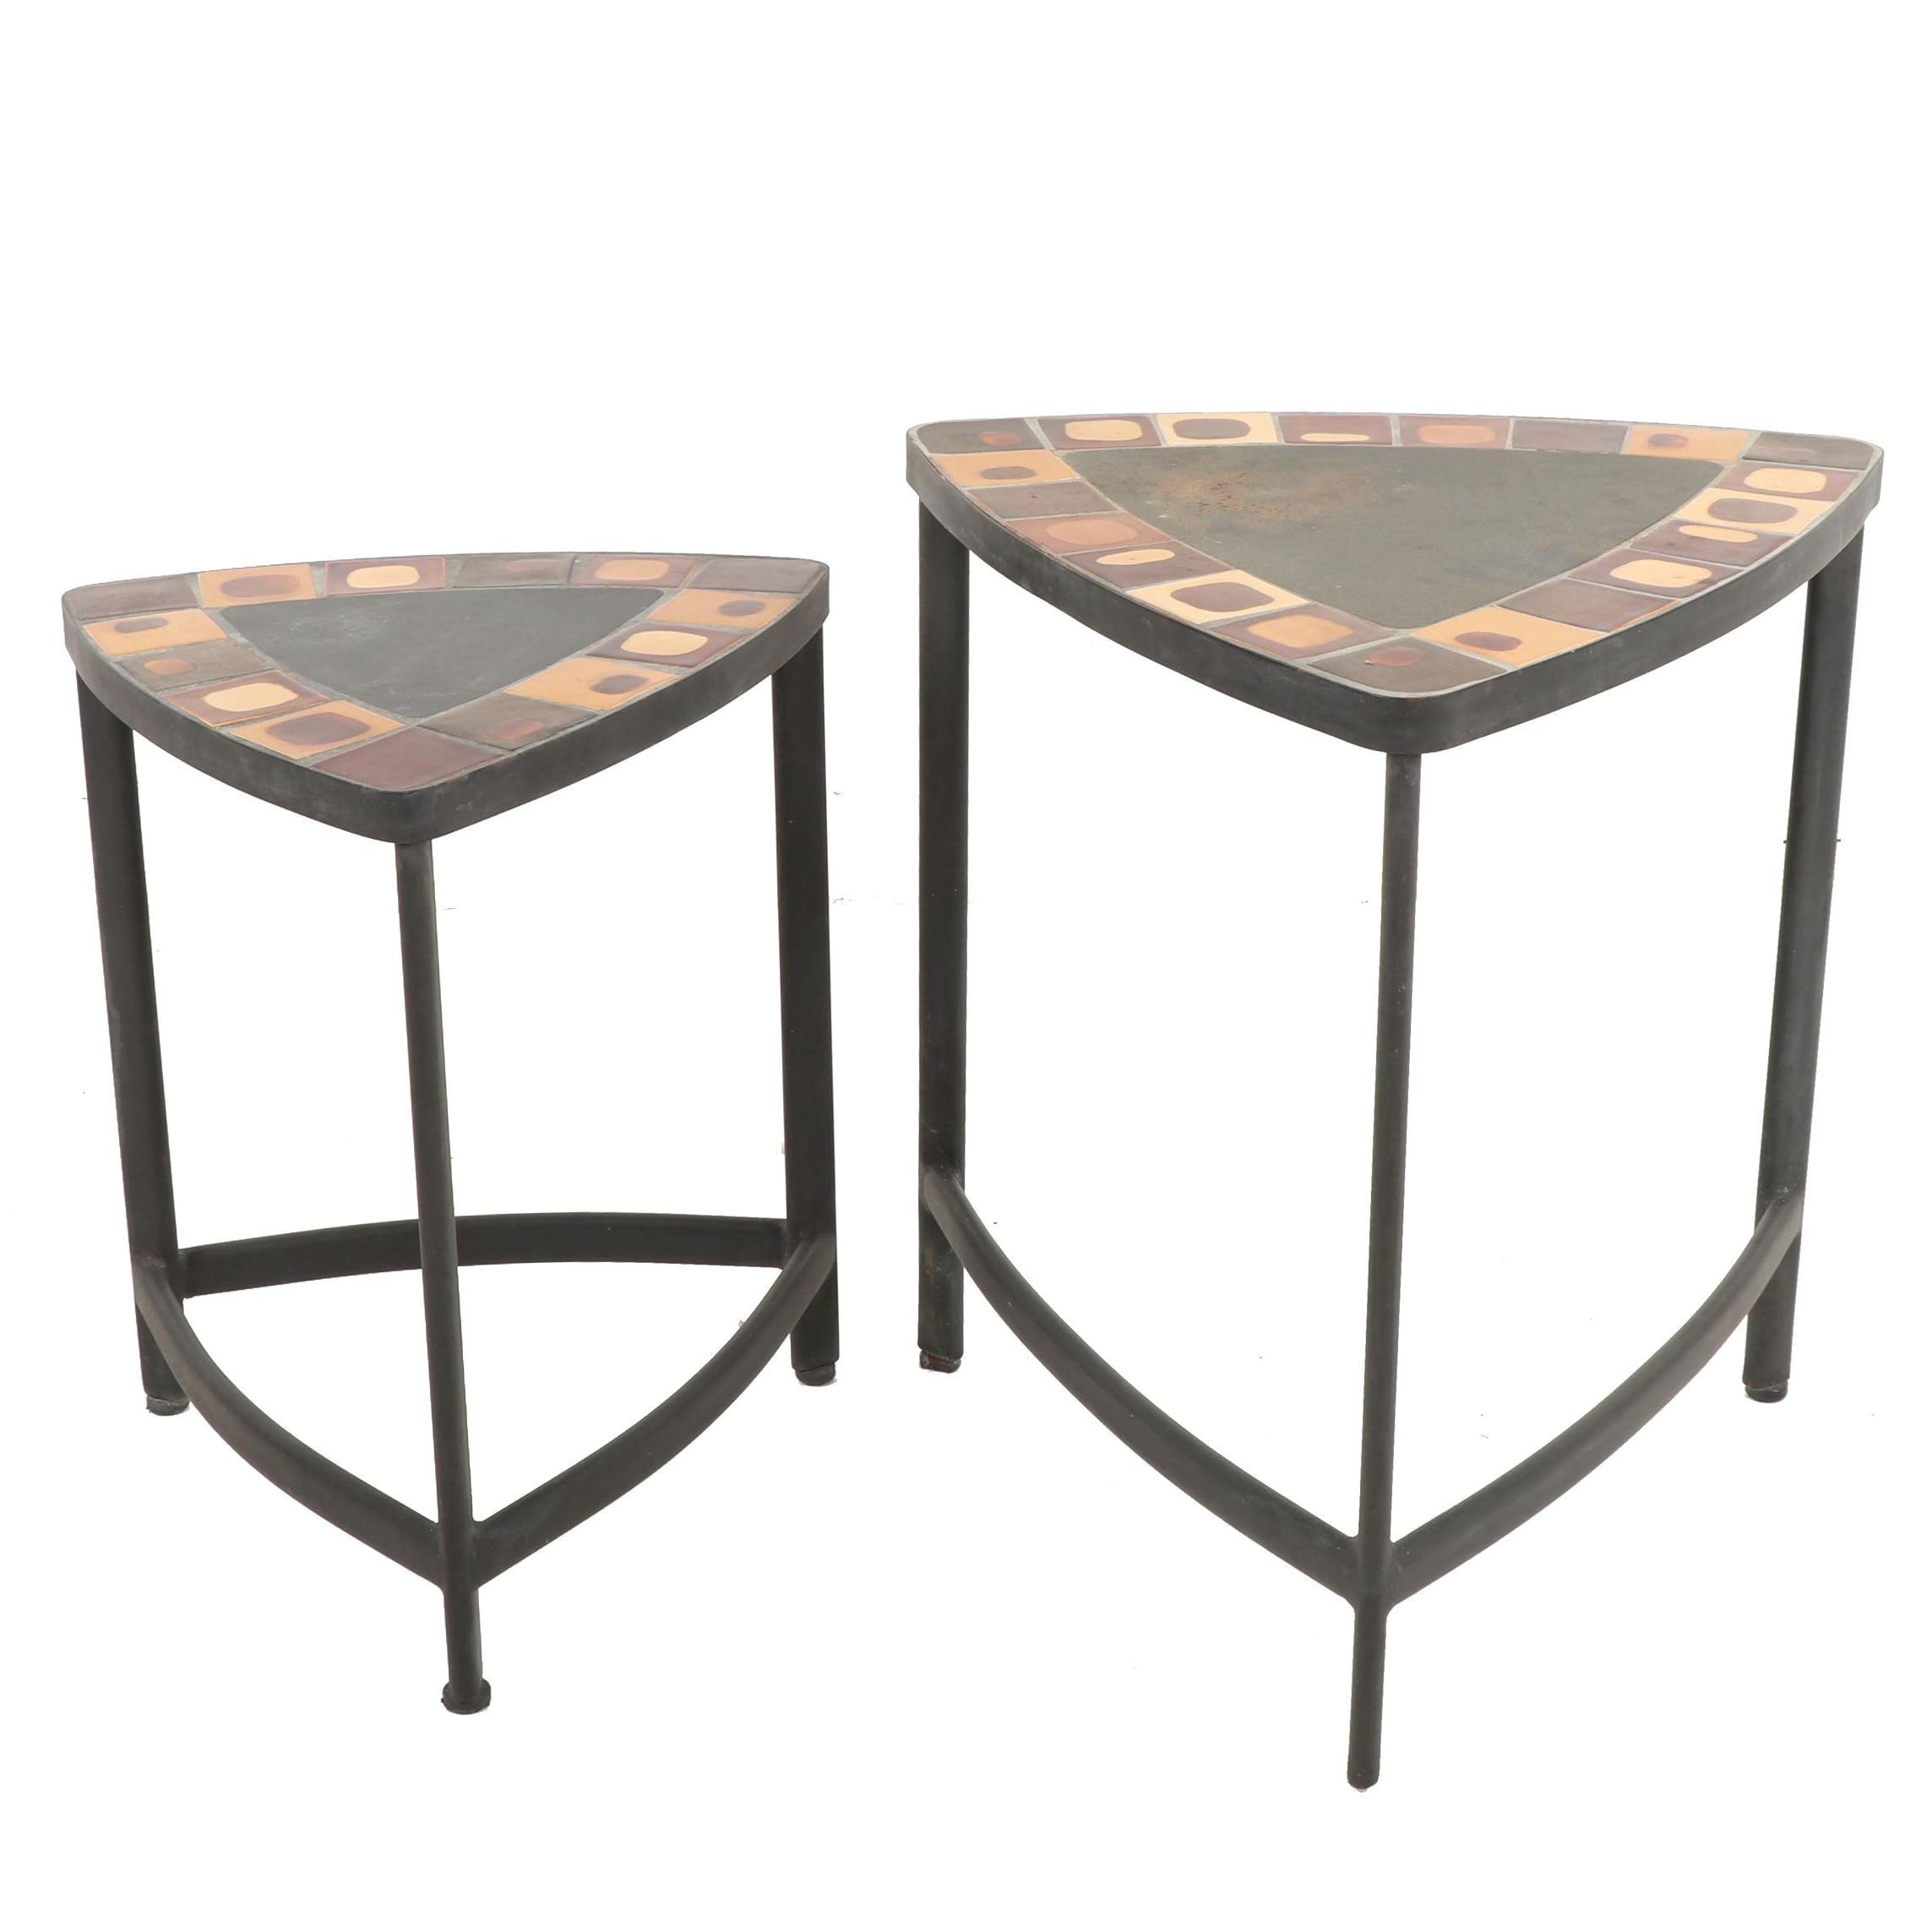 Pair of Contemporary Glazed Tile Top and Steel Base Triangular Side Tables